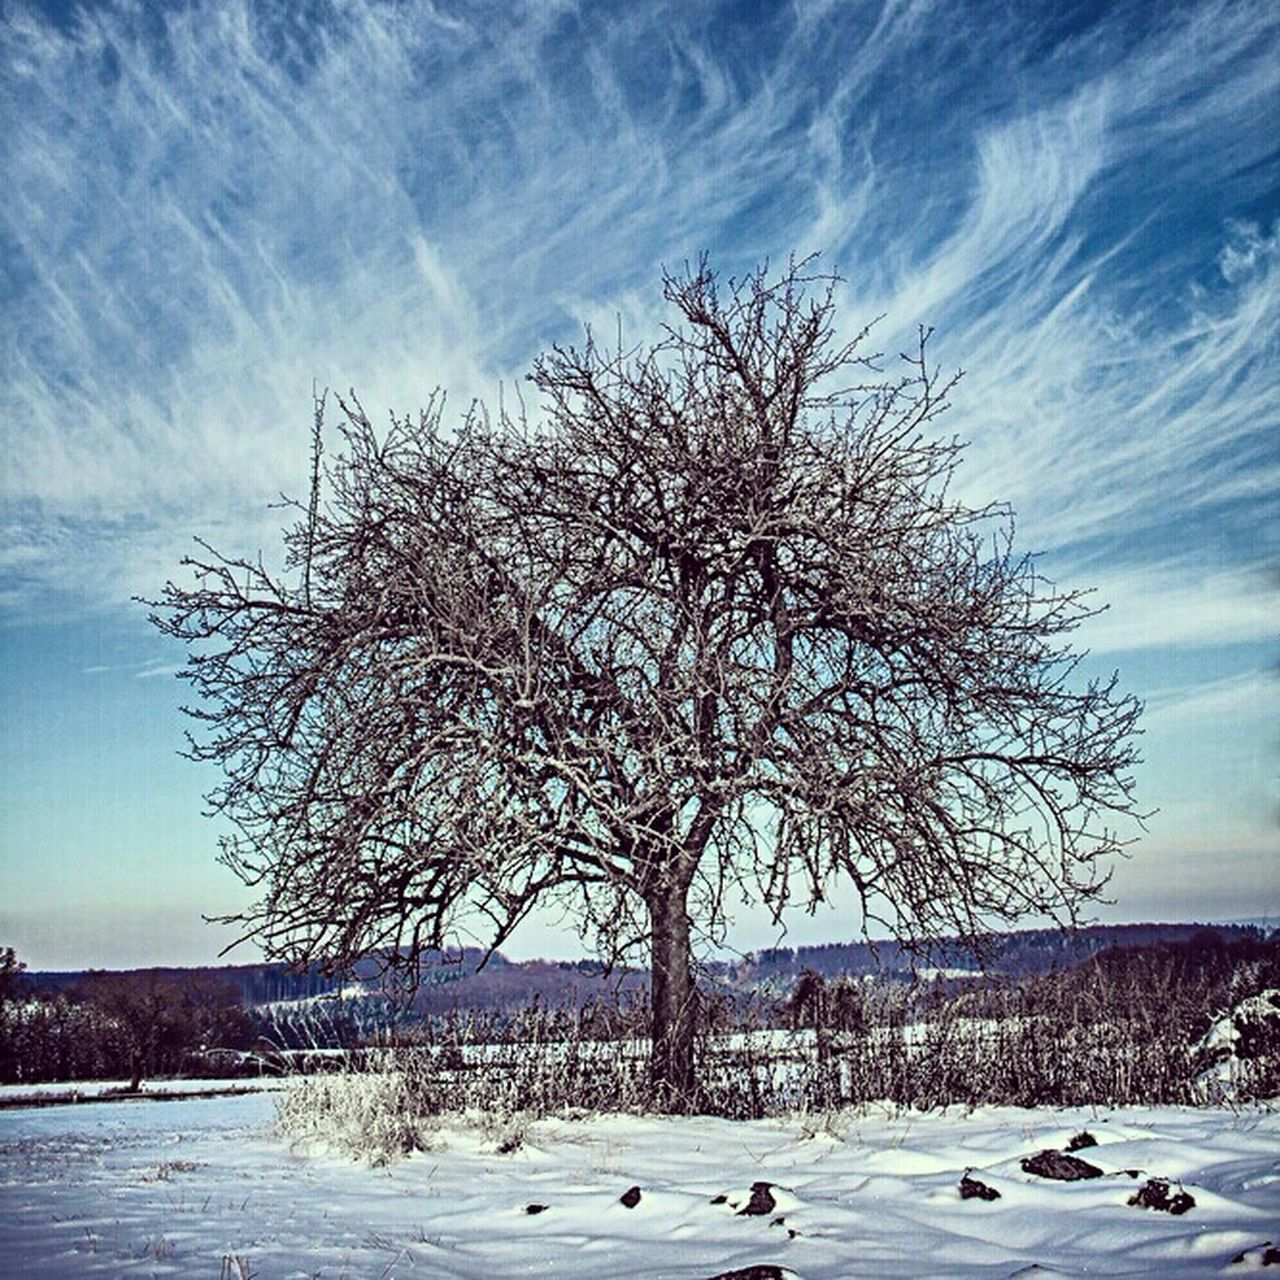 winter, snow, cold temperature, tree, nature, bare tree, beauty in nature, landscape, tranquility, tranquil scene, frozen, scenics, outdoors, branch, sky, no people, day